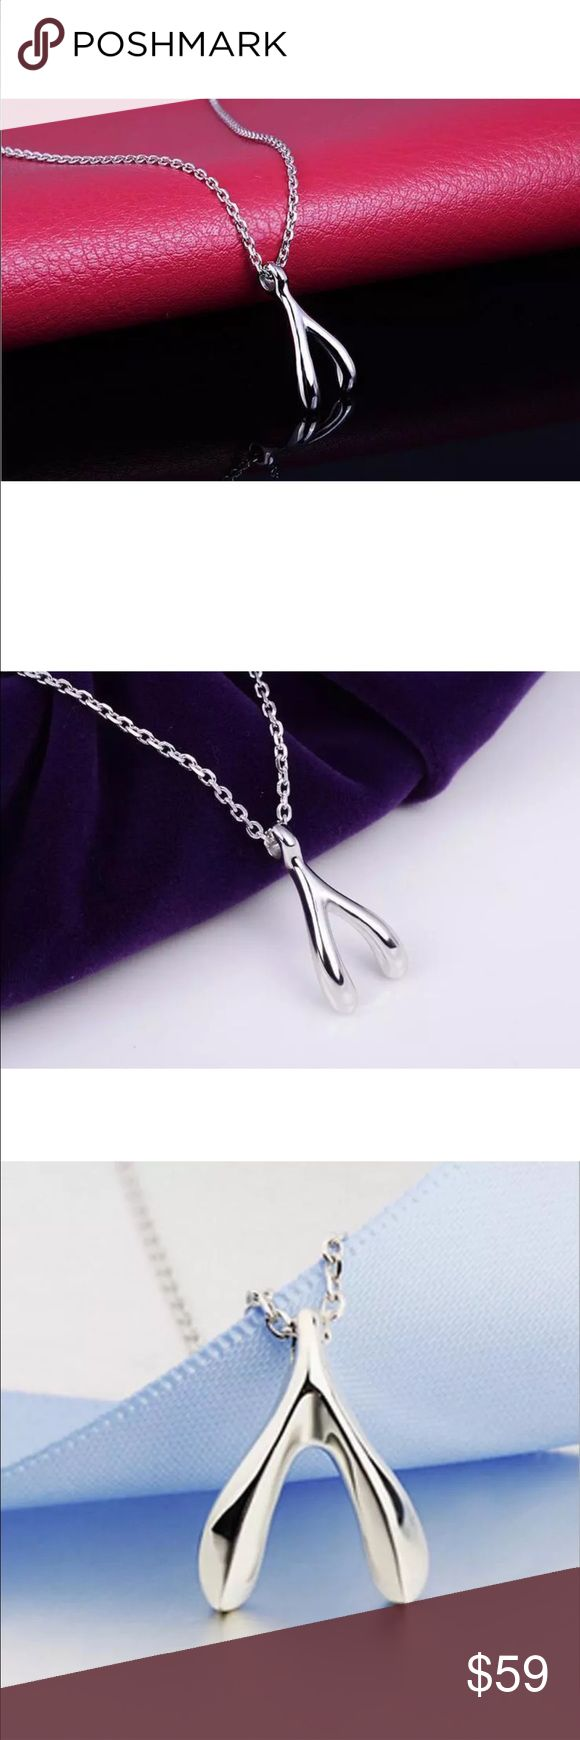 Make A Wish Show your love and support Brand New Boutique Quality Absolutely Silver Plated for wear and shine longevity  Limited Quantity. 50% Proceeds Donated to Make A Wish Foundation. Jewelry Necklaces